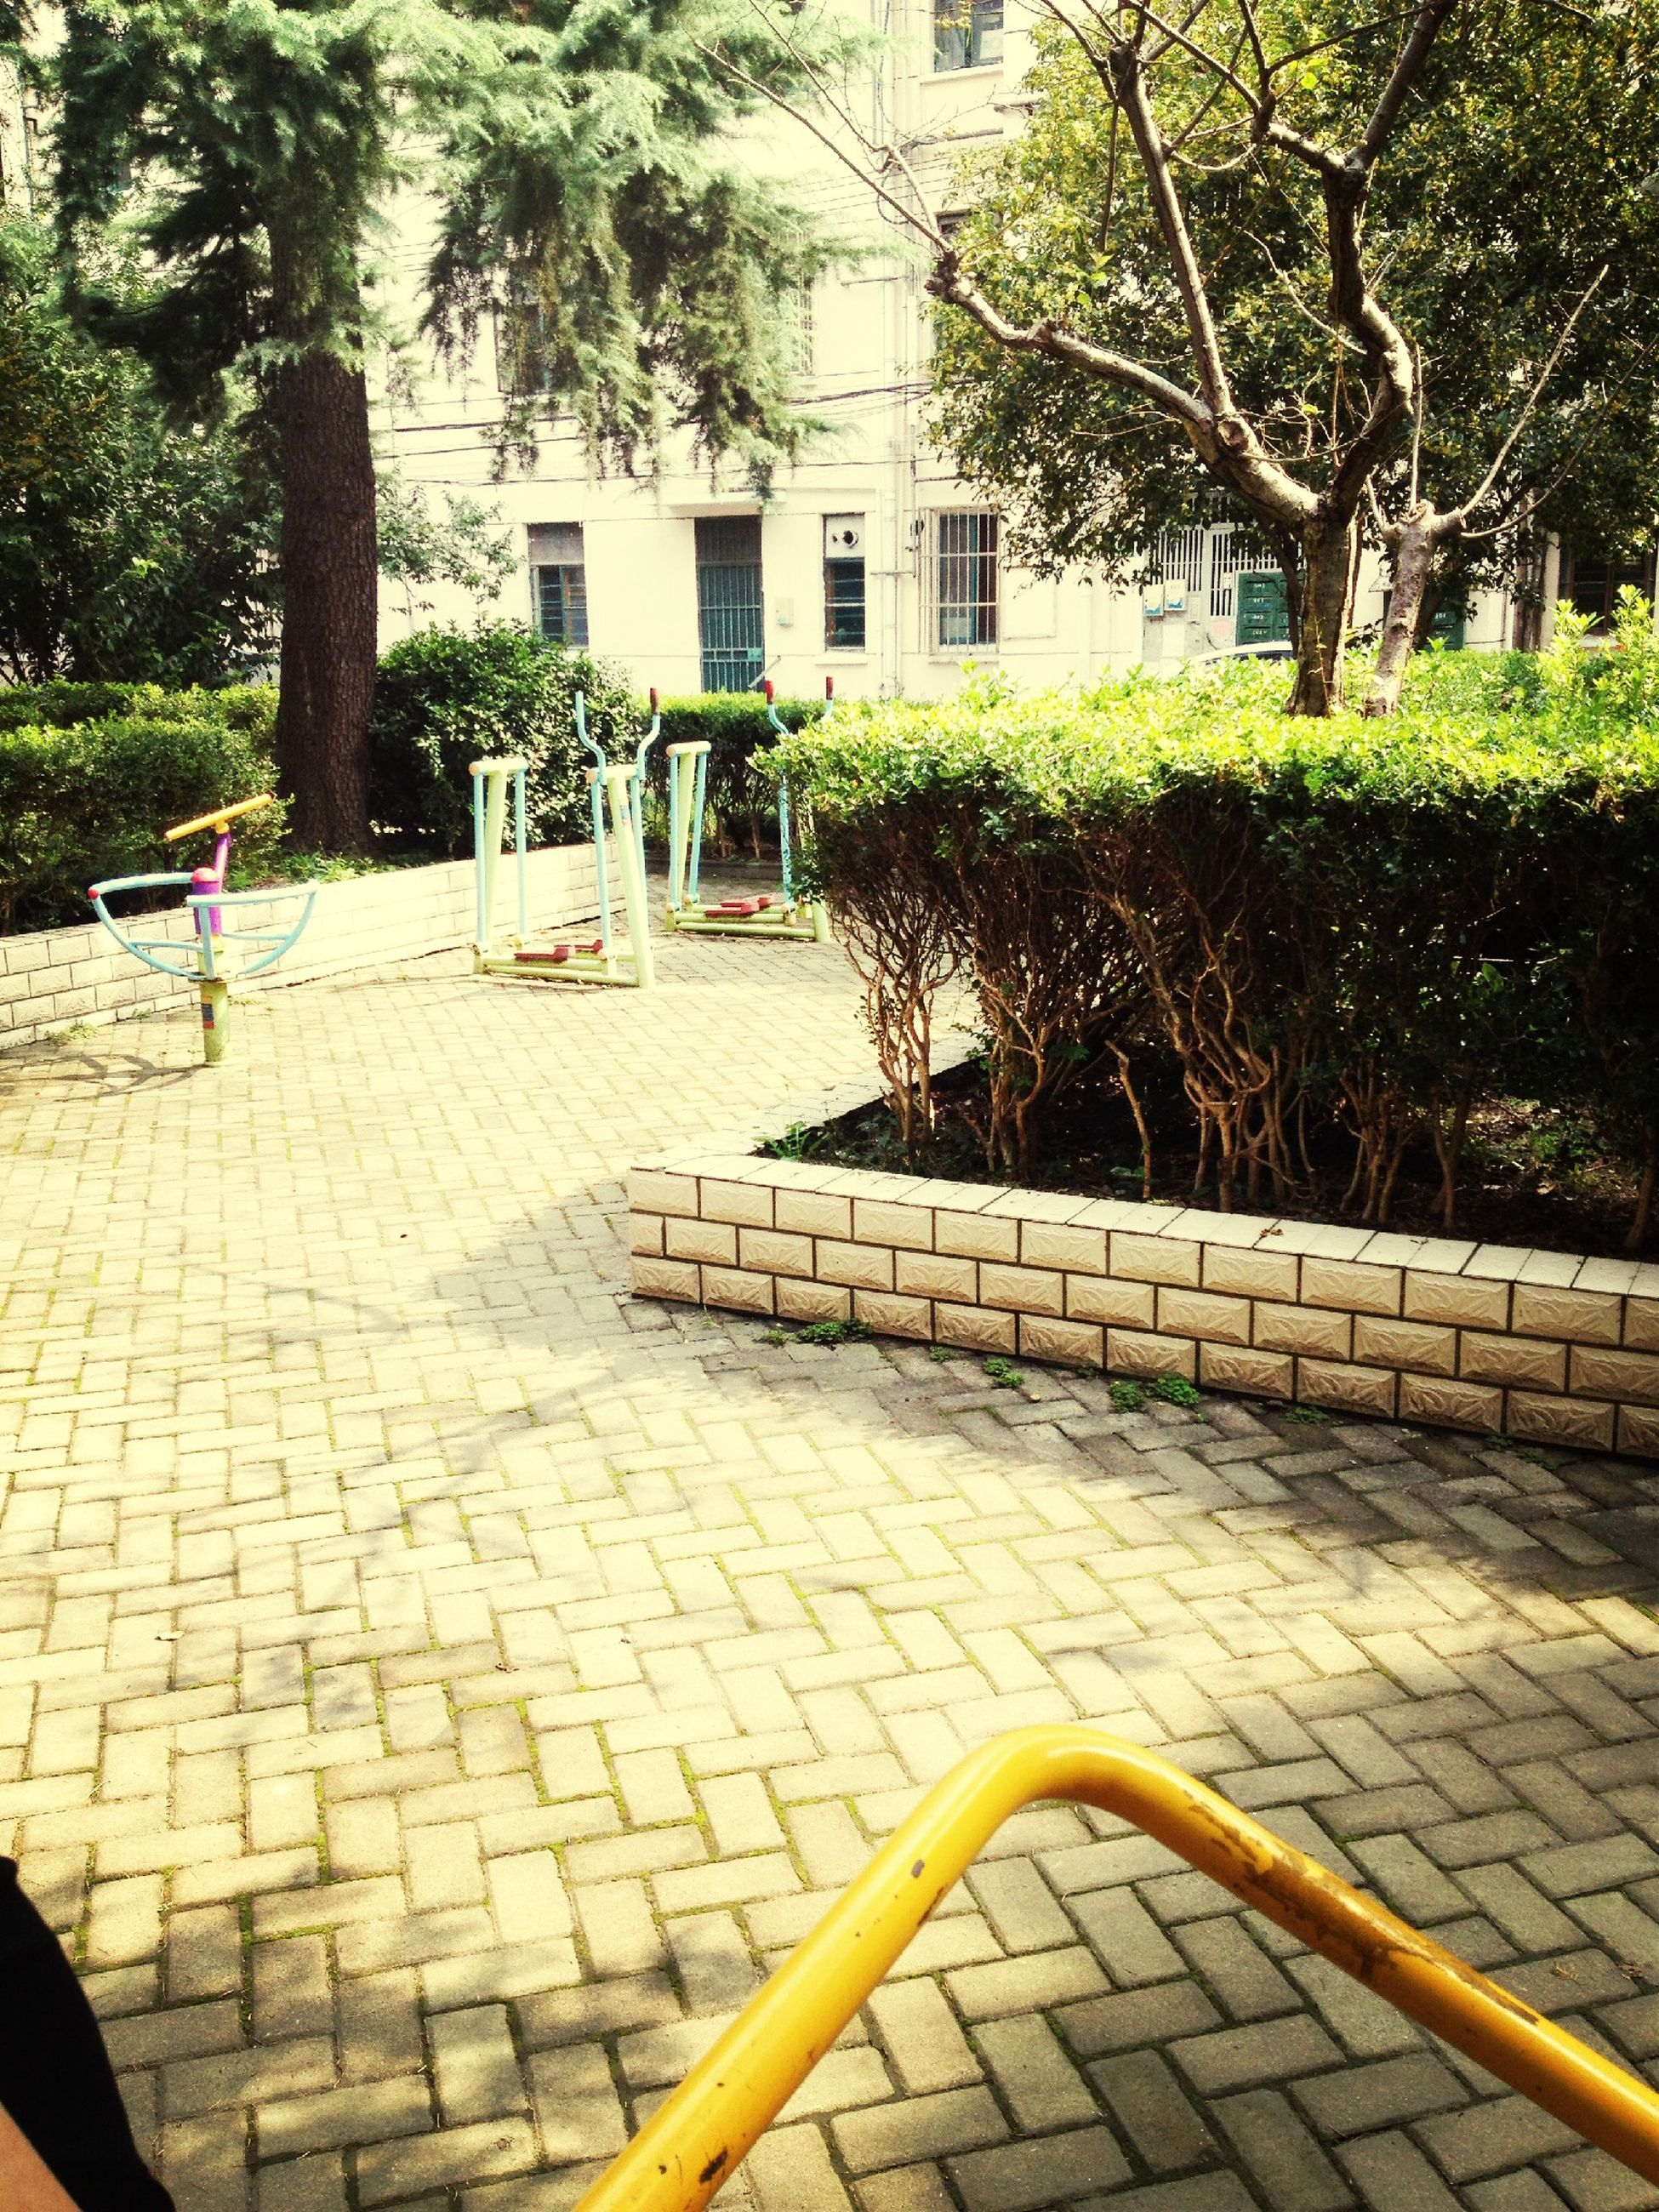 tree, cobblestone, paving stone, bench, footpath, park - man made space, building exterior, built structure, steps, walkway, architecture, growth, railing, sunlight, empty, sidewalk, pavement, outdoors, chair, day